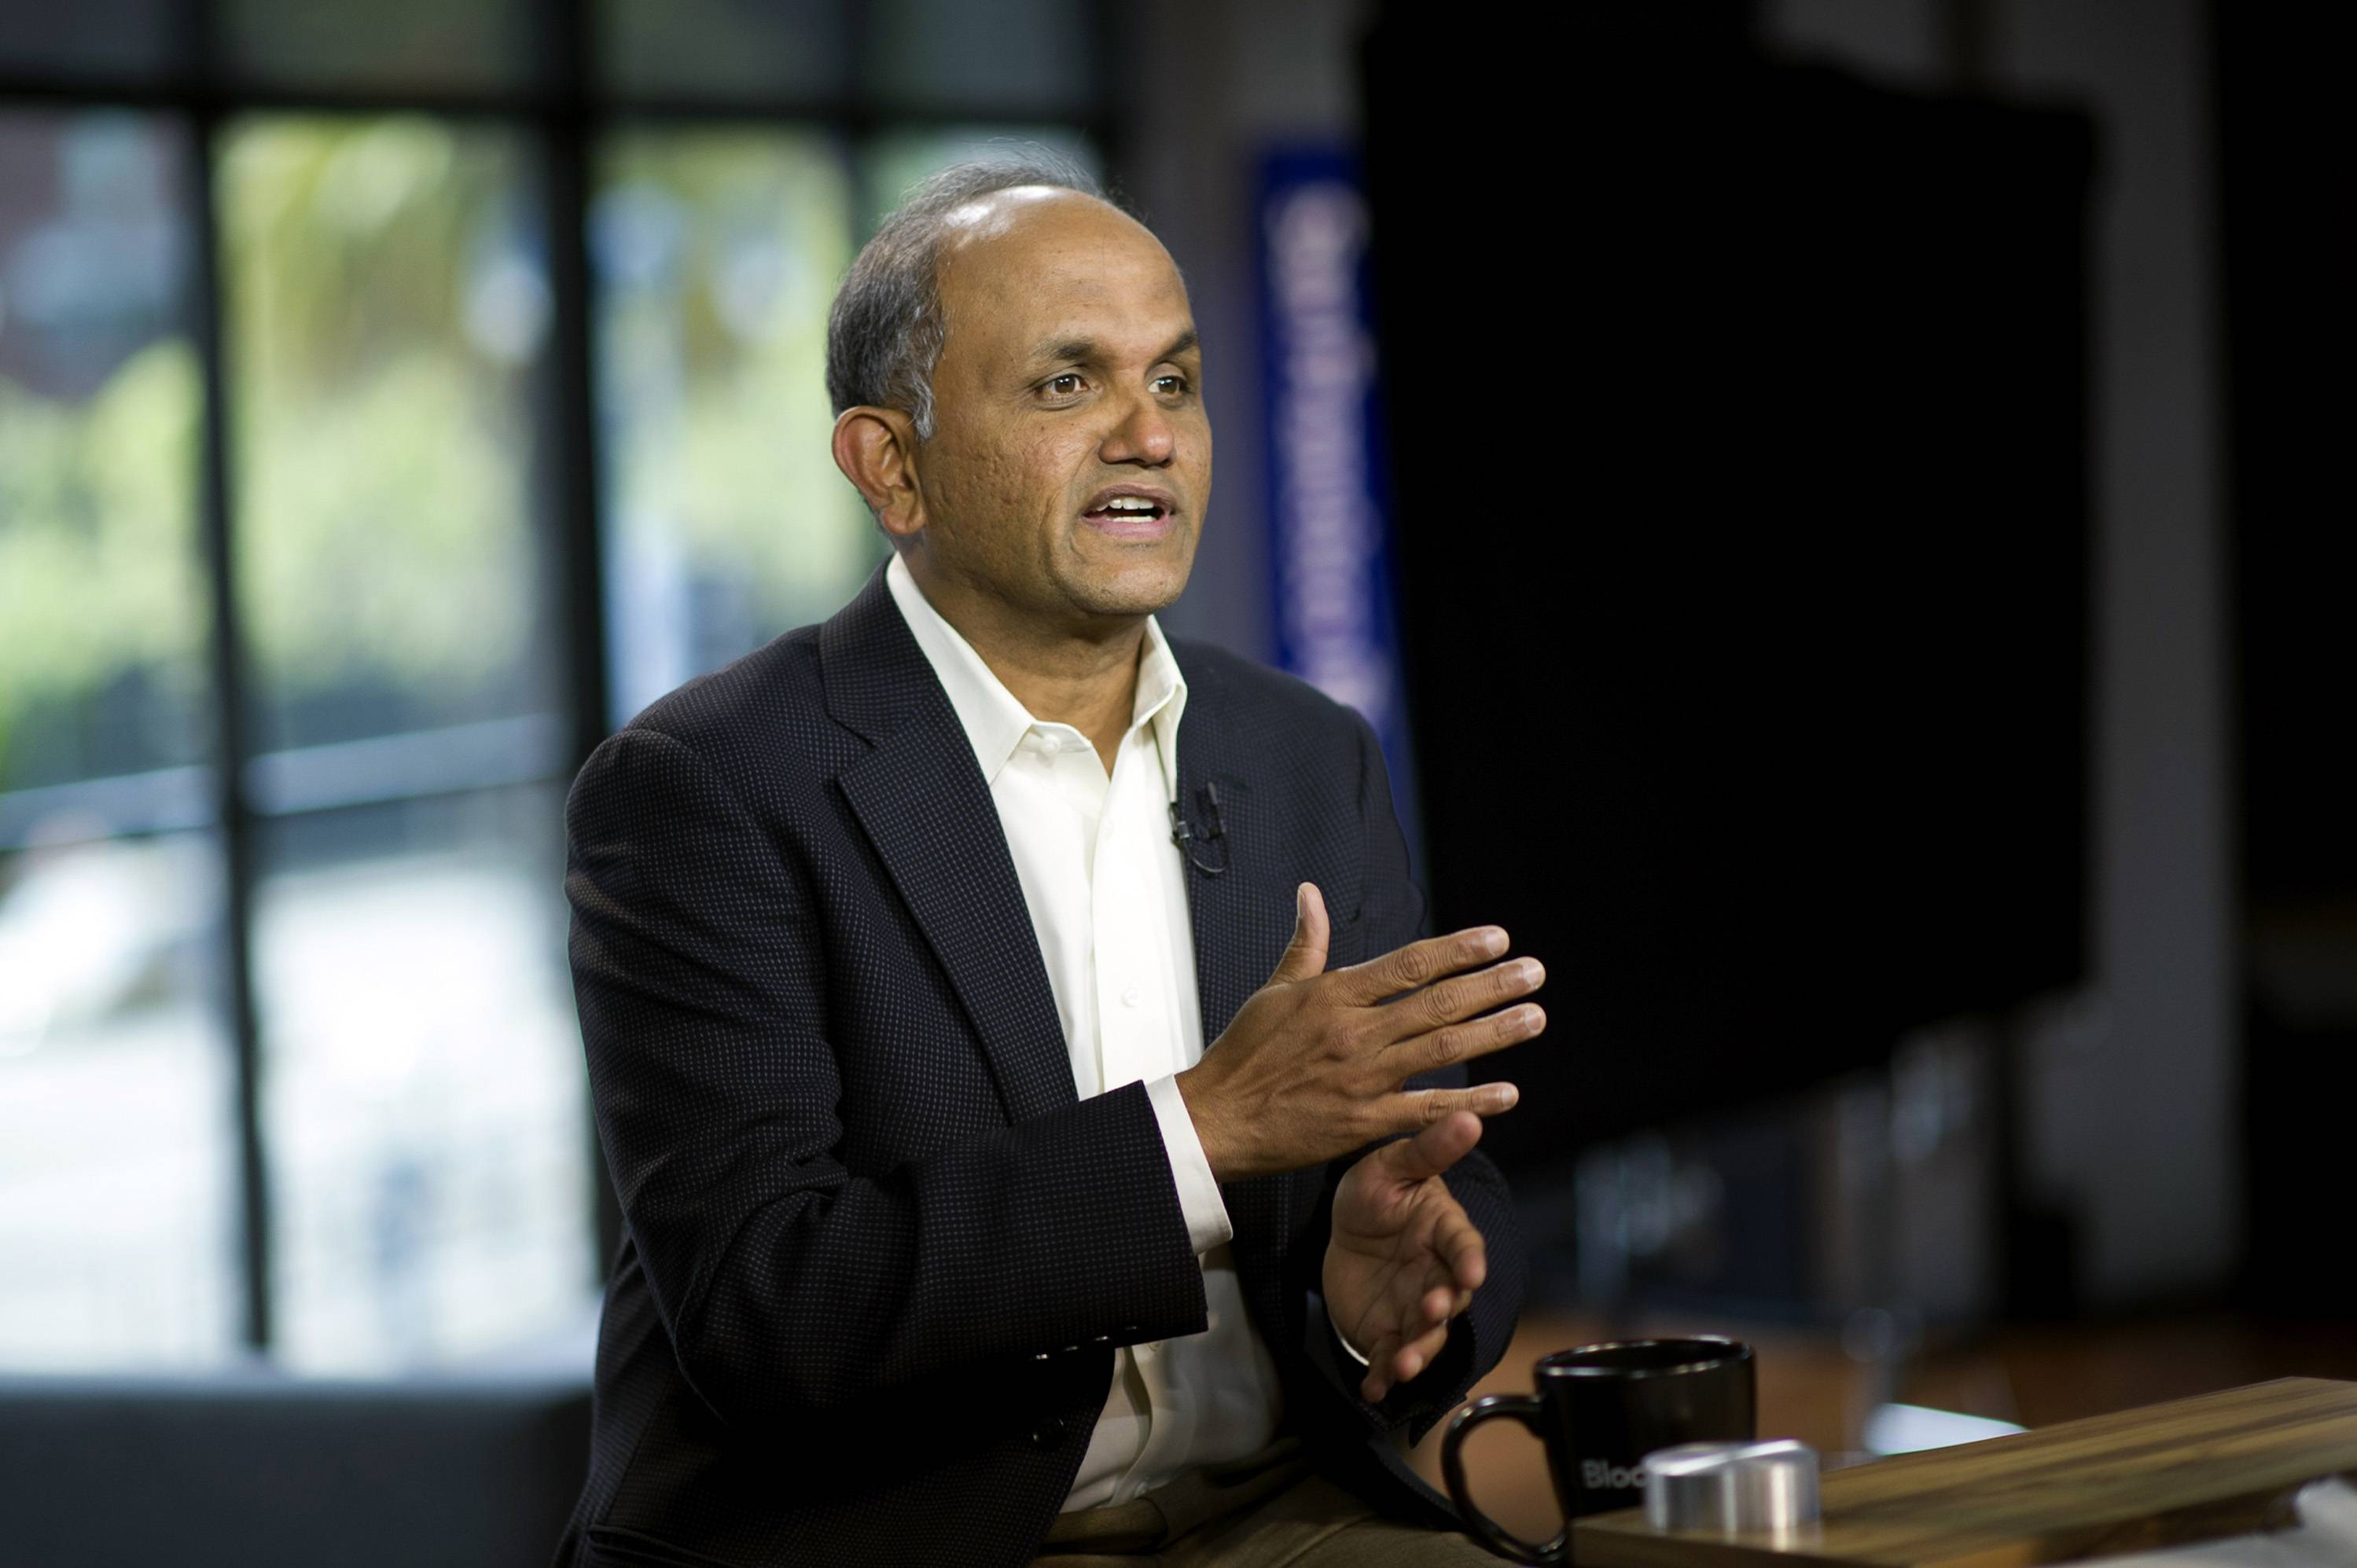 Shantanu Narayen, president and chief executive officer of Adobe Systems Inc. Adobe Systems Inc. added online subscribers at a faster-than-projected clip, as the company attempts to return to growth by selling Internet subscriptions for applications like Photoshop.